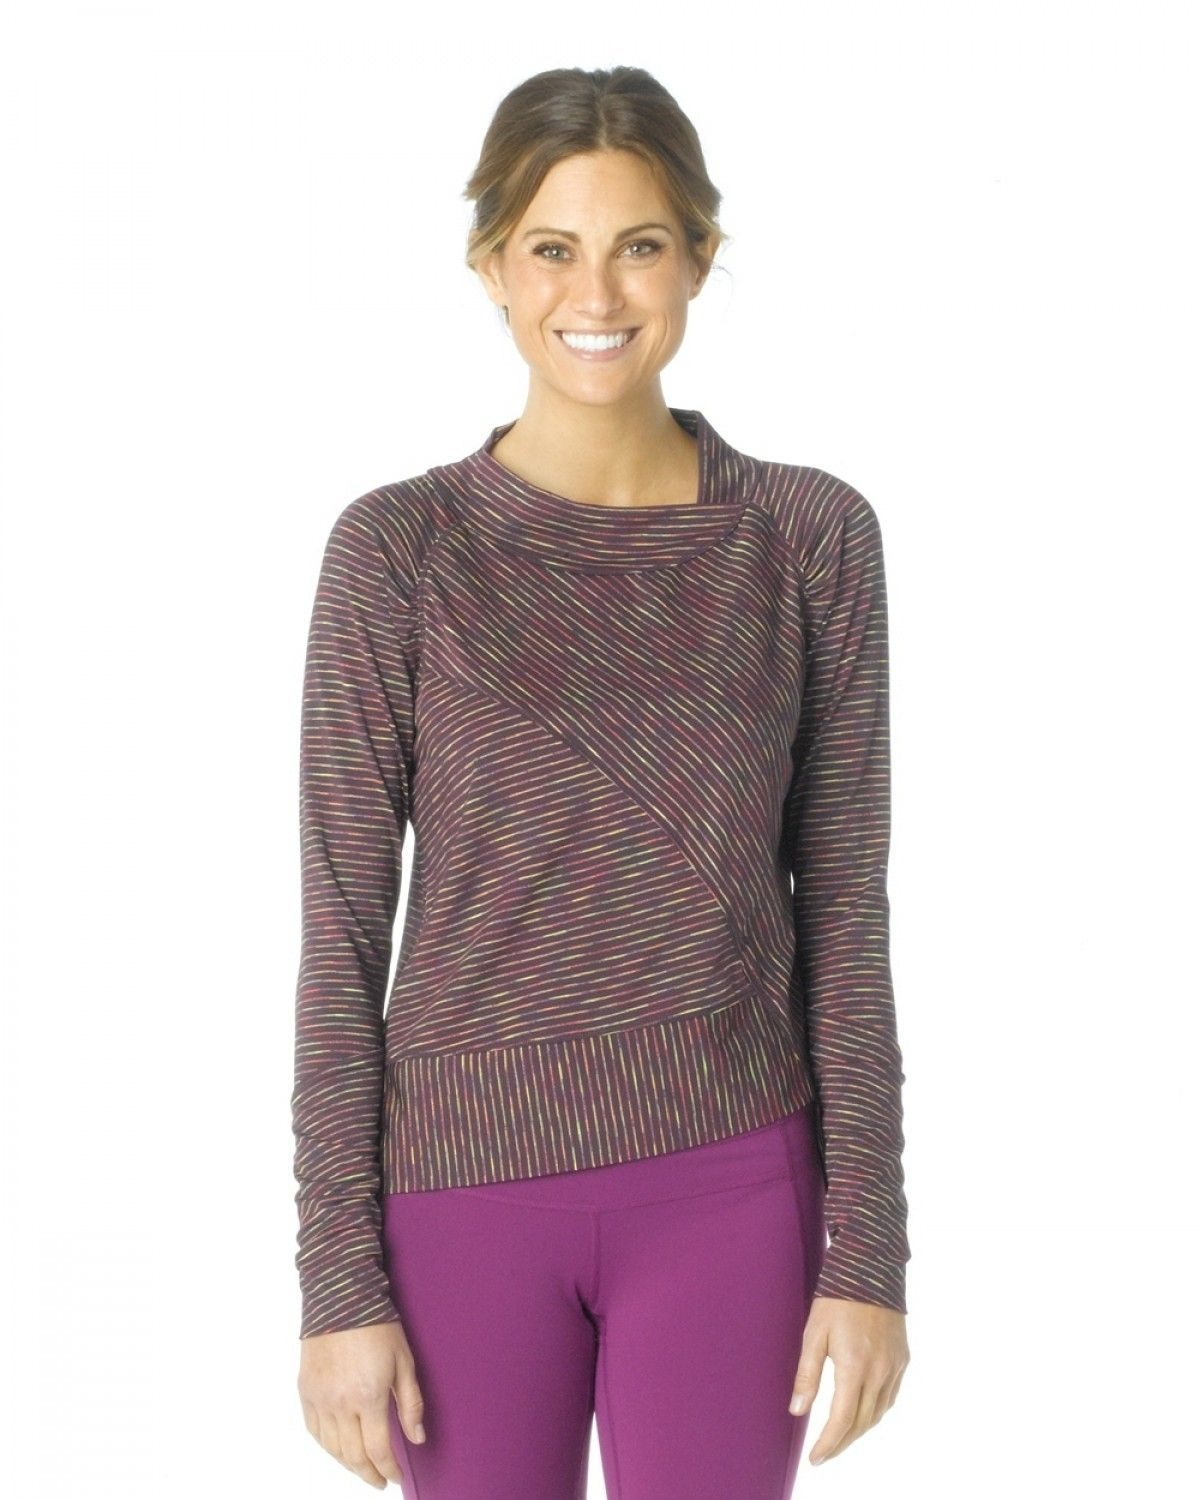 Prana Alicia Pullover Top Prana Shop By Brand Tops Pullover Yoga Wear